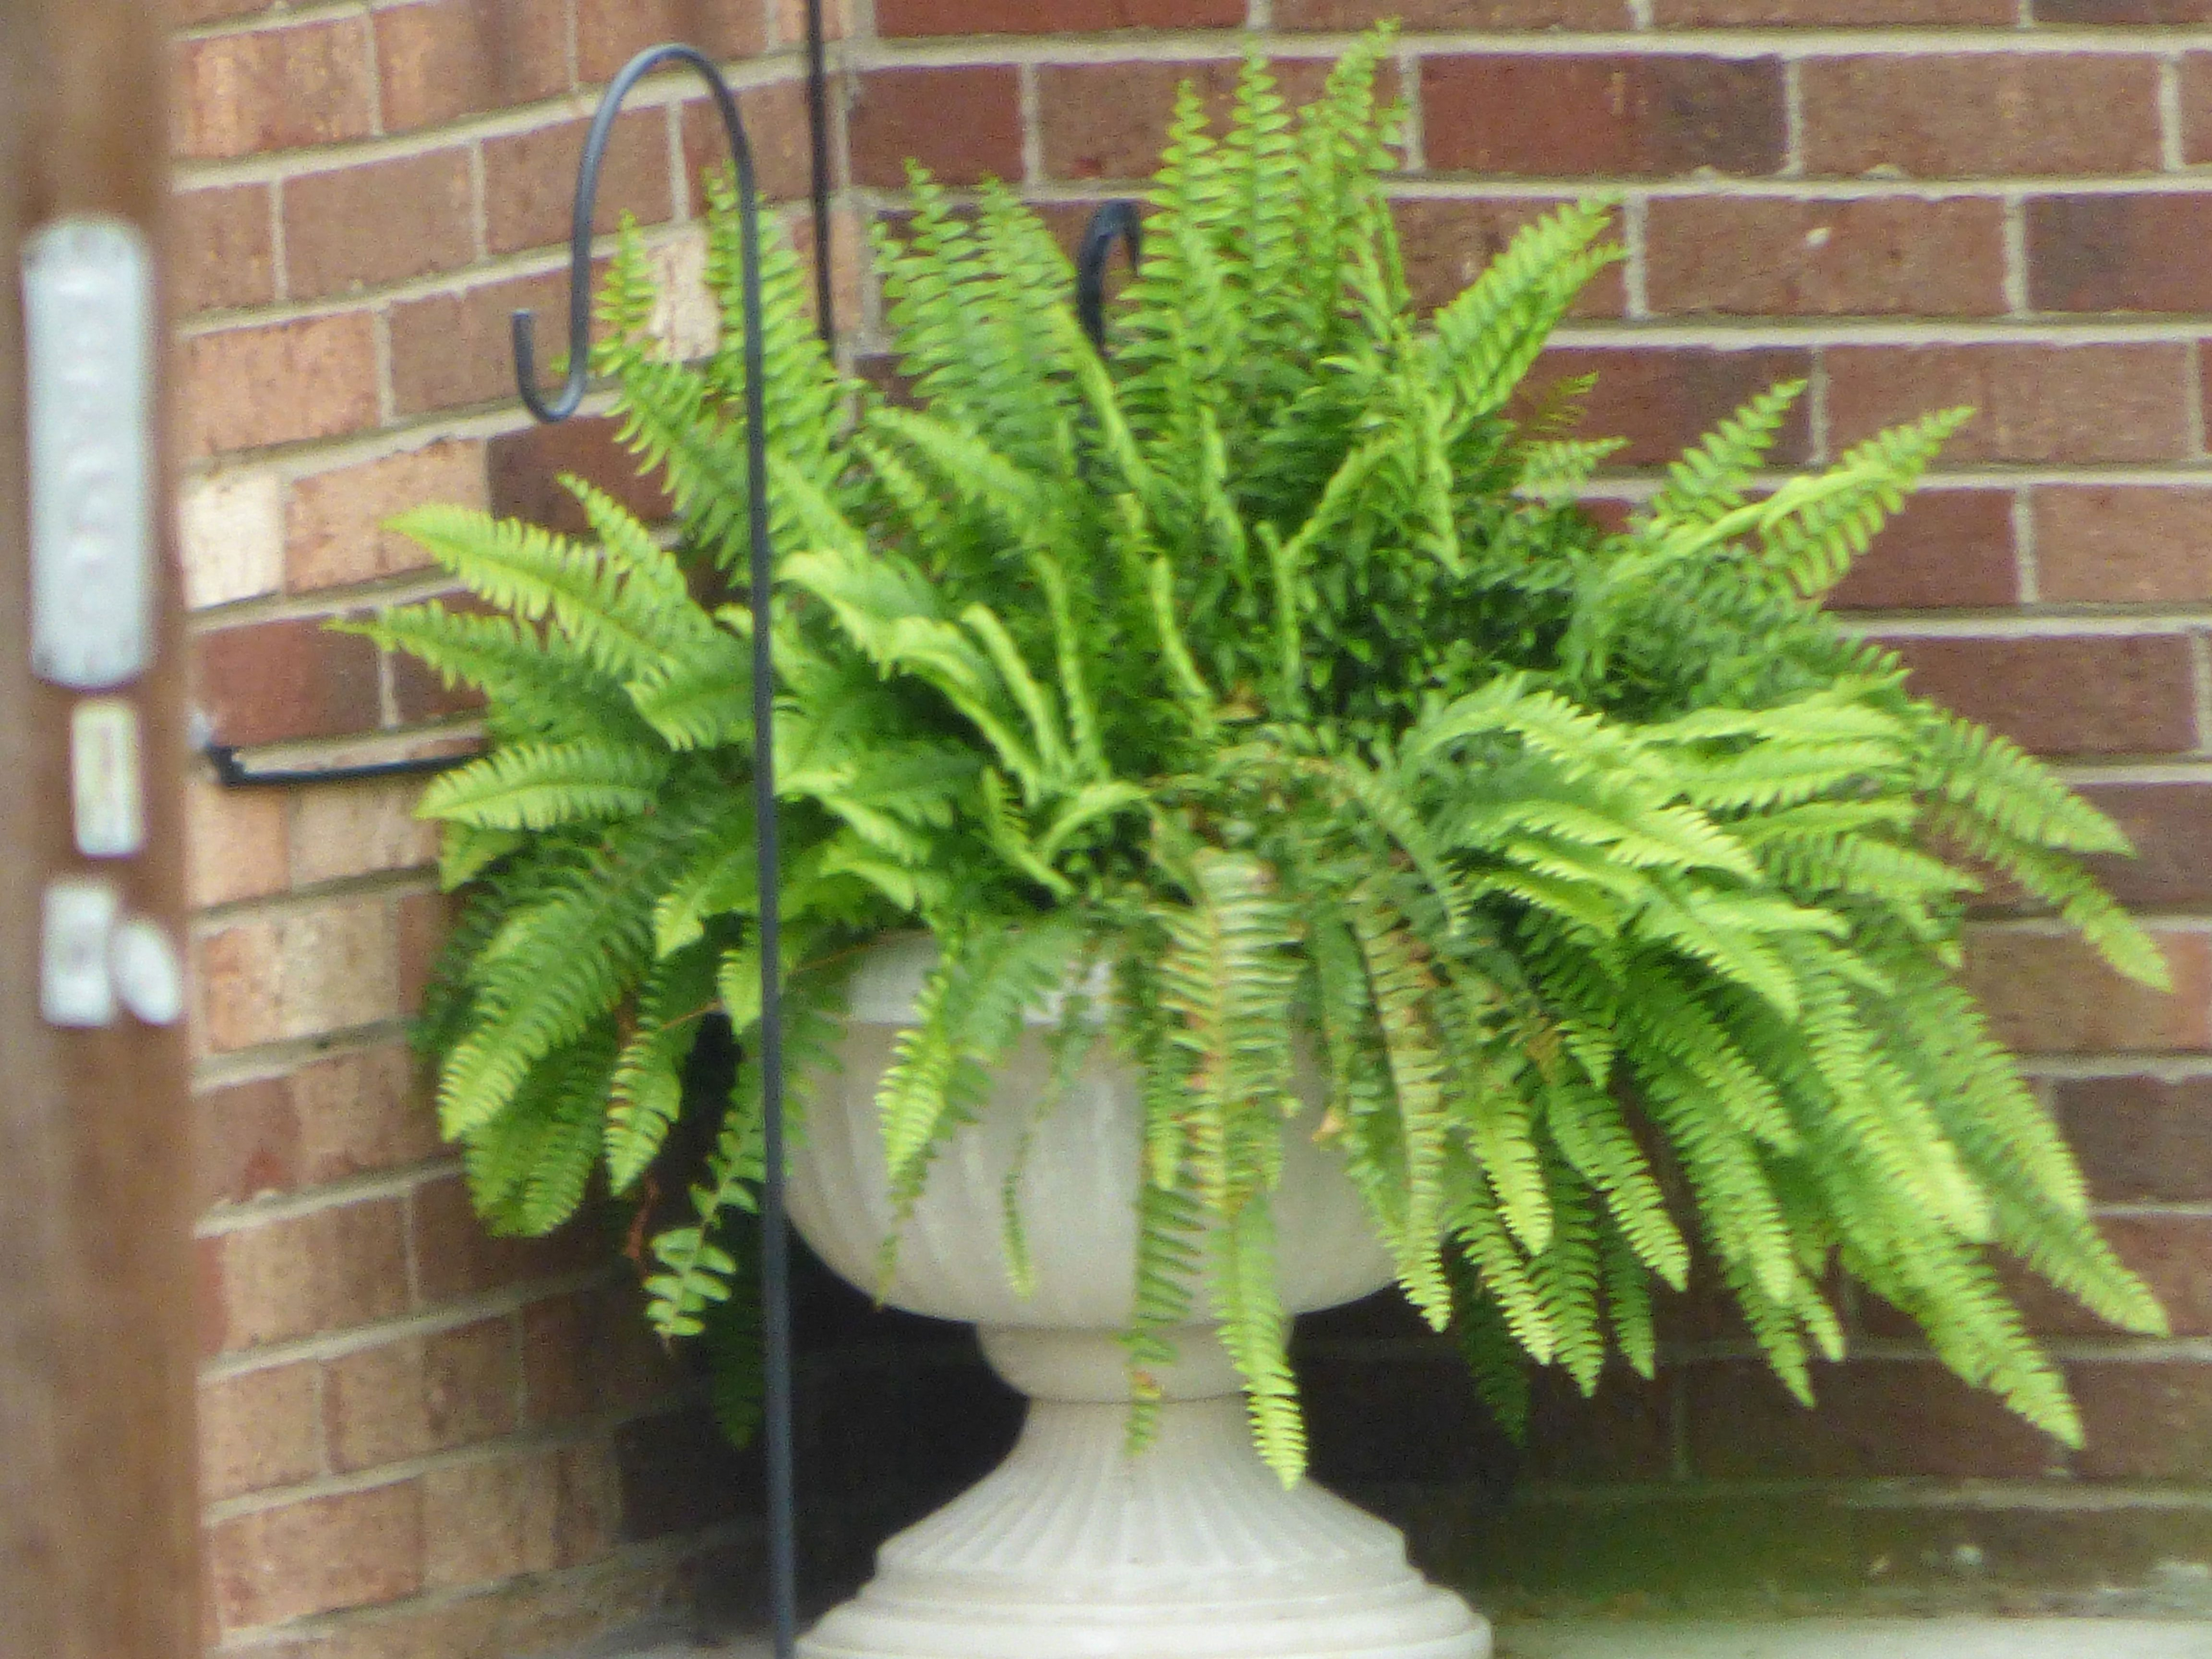 How to Grow Boston Ferns | Miracle-Gro